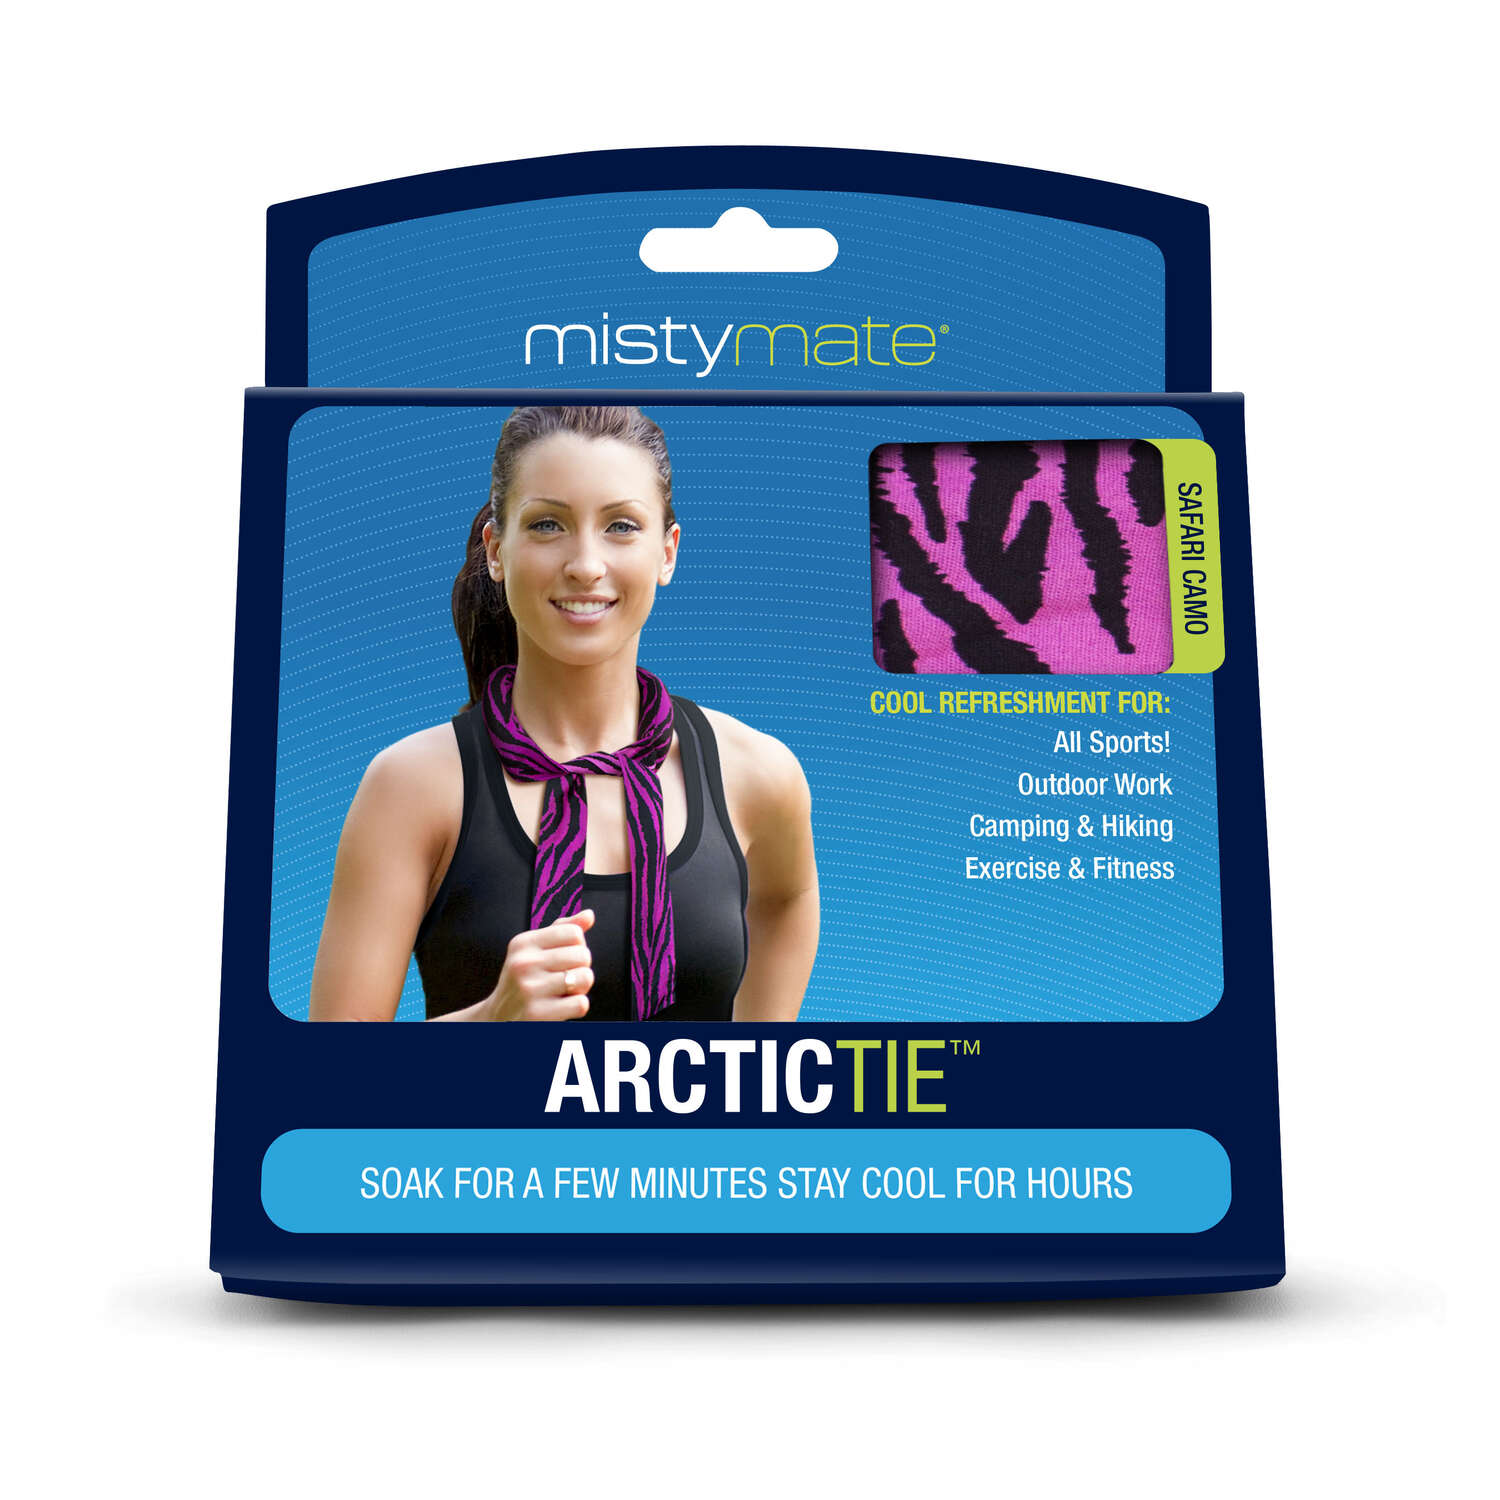 Misty Mate  Arctic Tie Cooling Neck Wrap  1 pk Blue and Pink